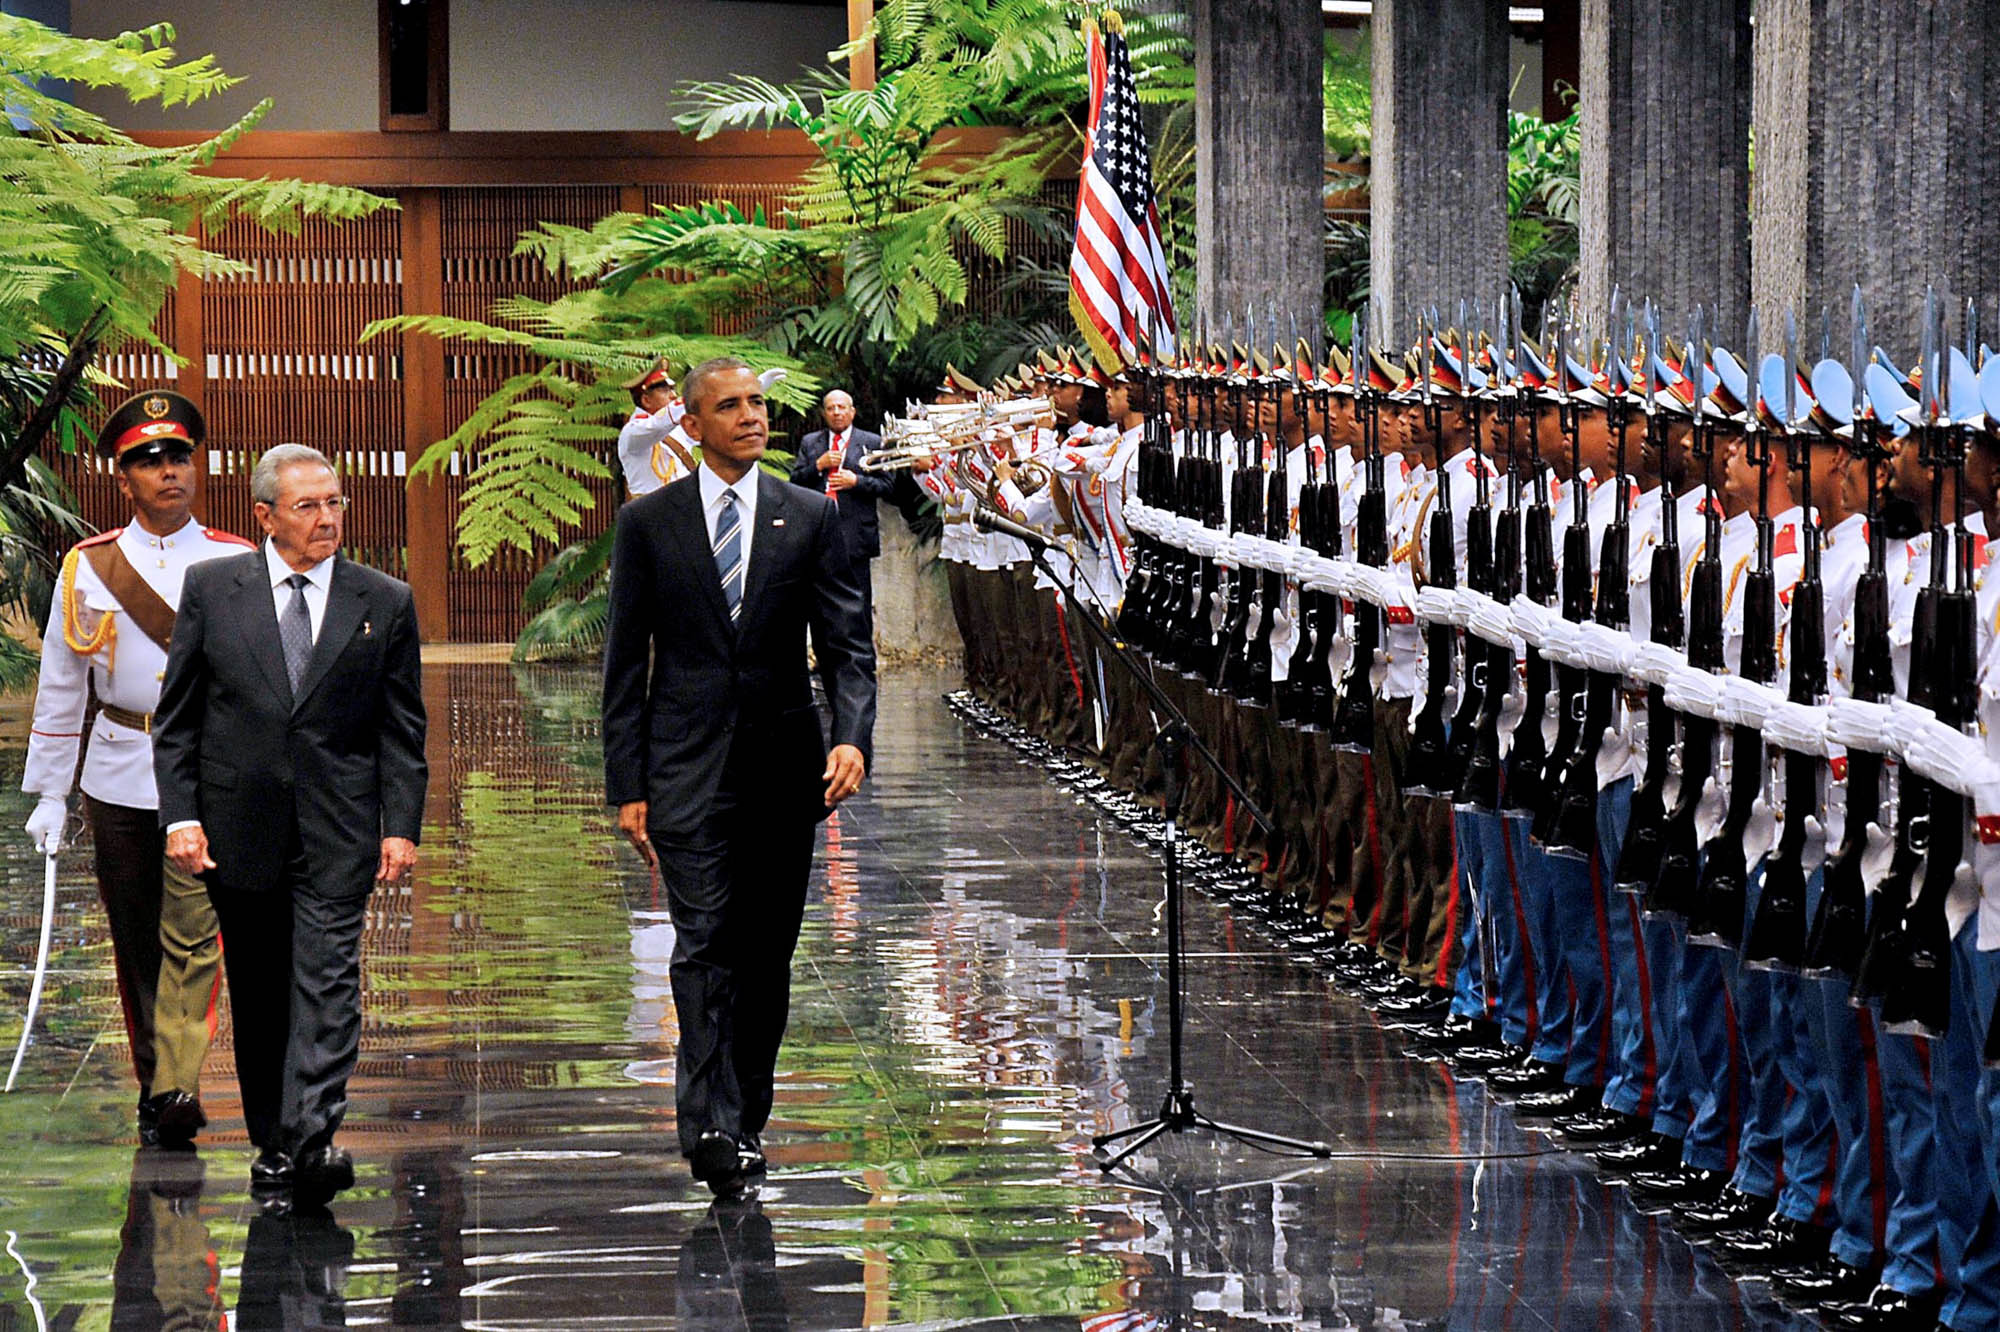 Raul Castro and Barack Obama walking past a line of military personnel (AFP/Getty)